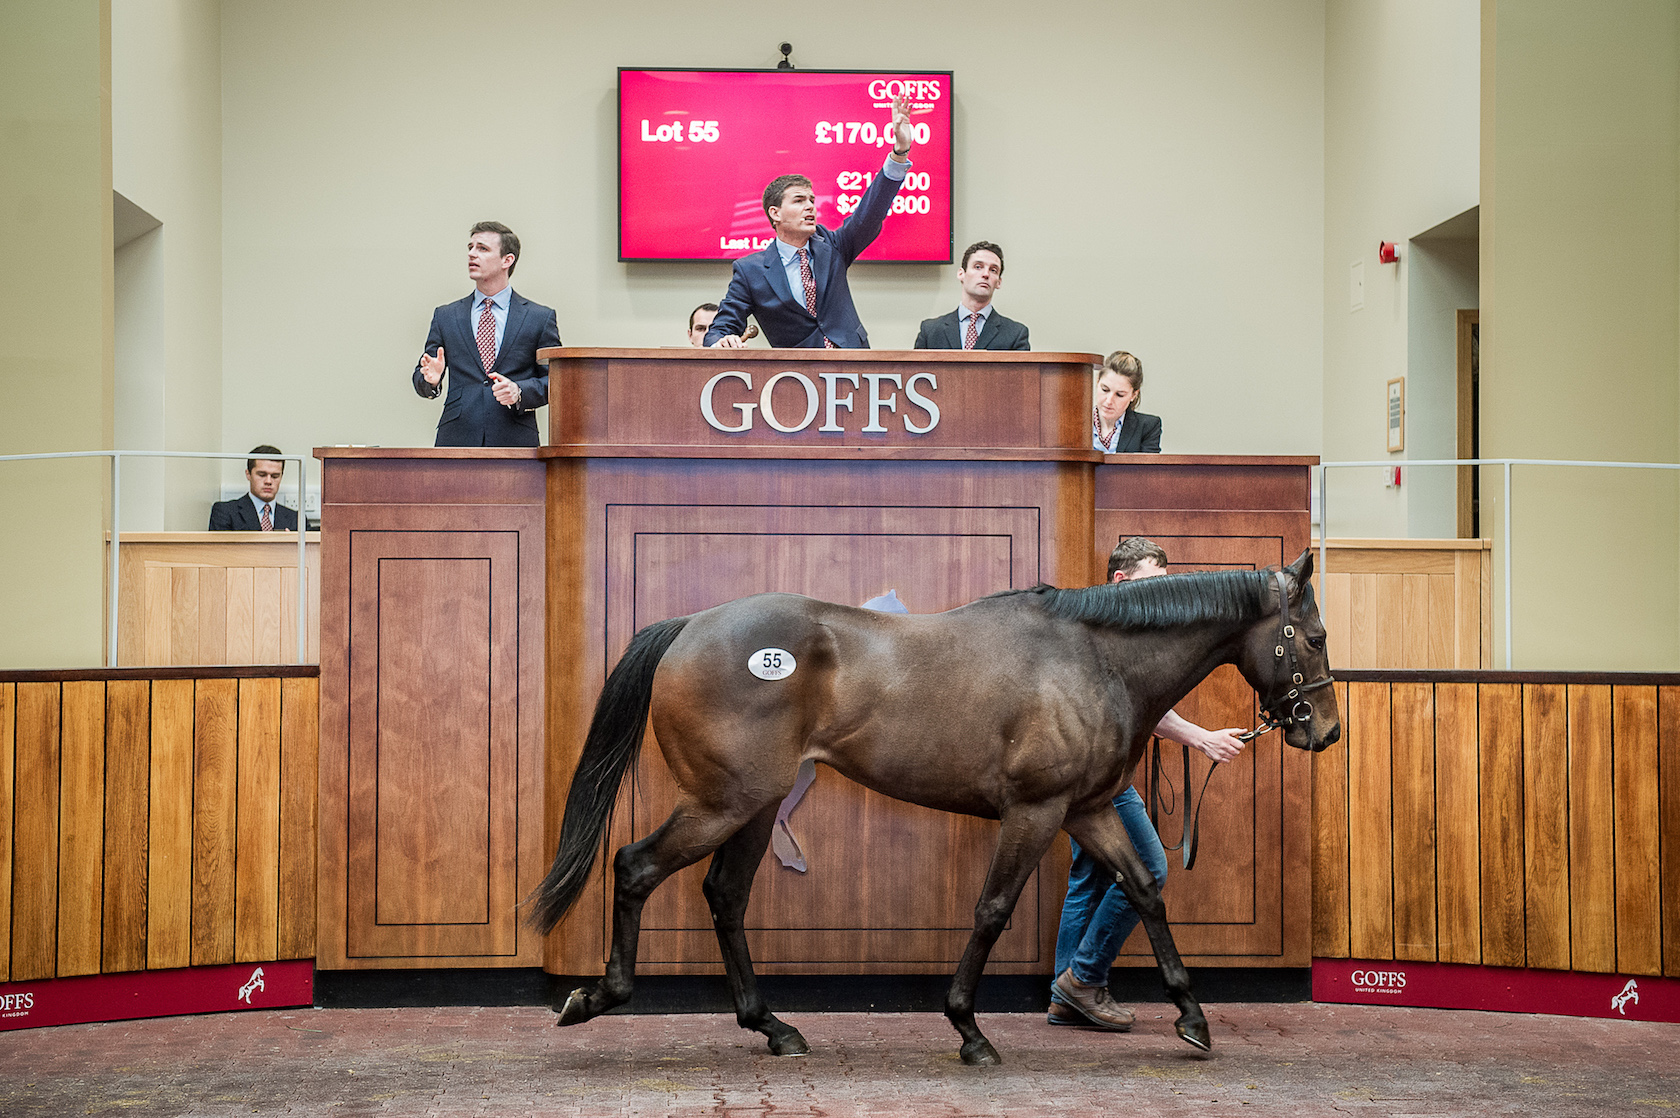 Sale-topper: Ardad goes for £170,000 at the Goffs UK Breeze-Up sale in 2016. Photo: Sarah Farnsworth